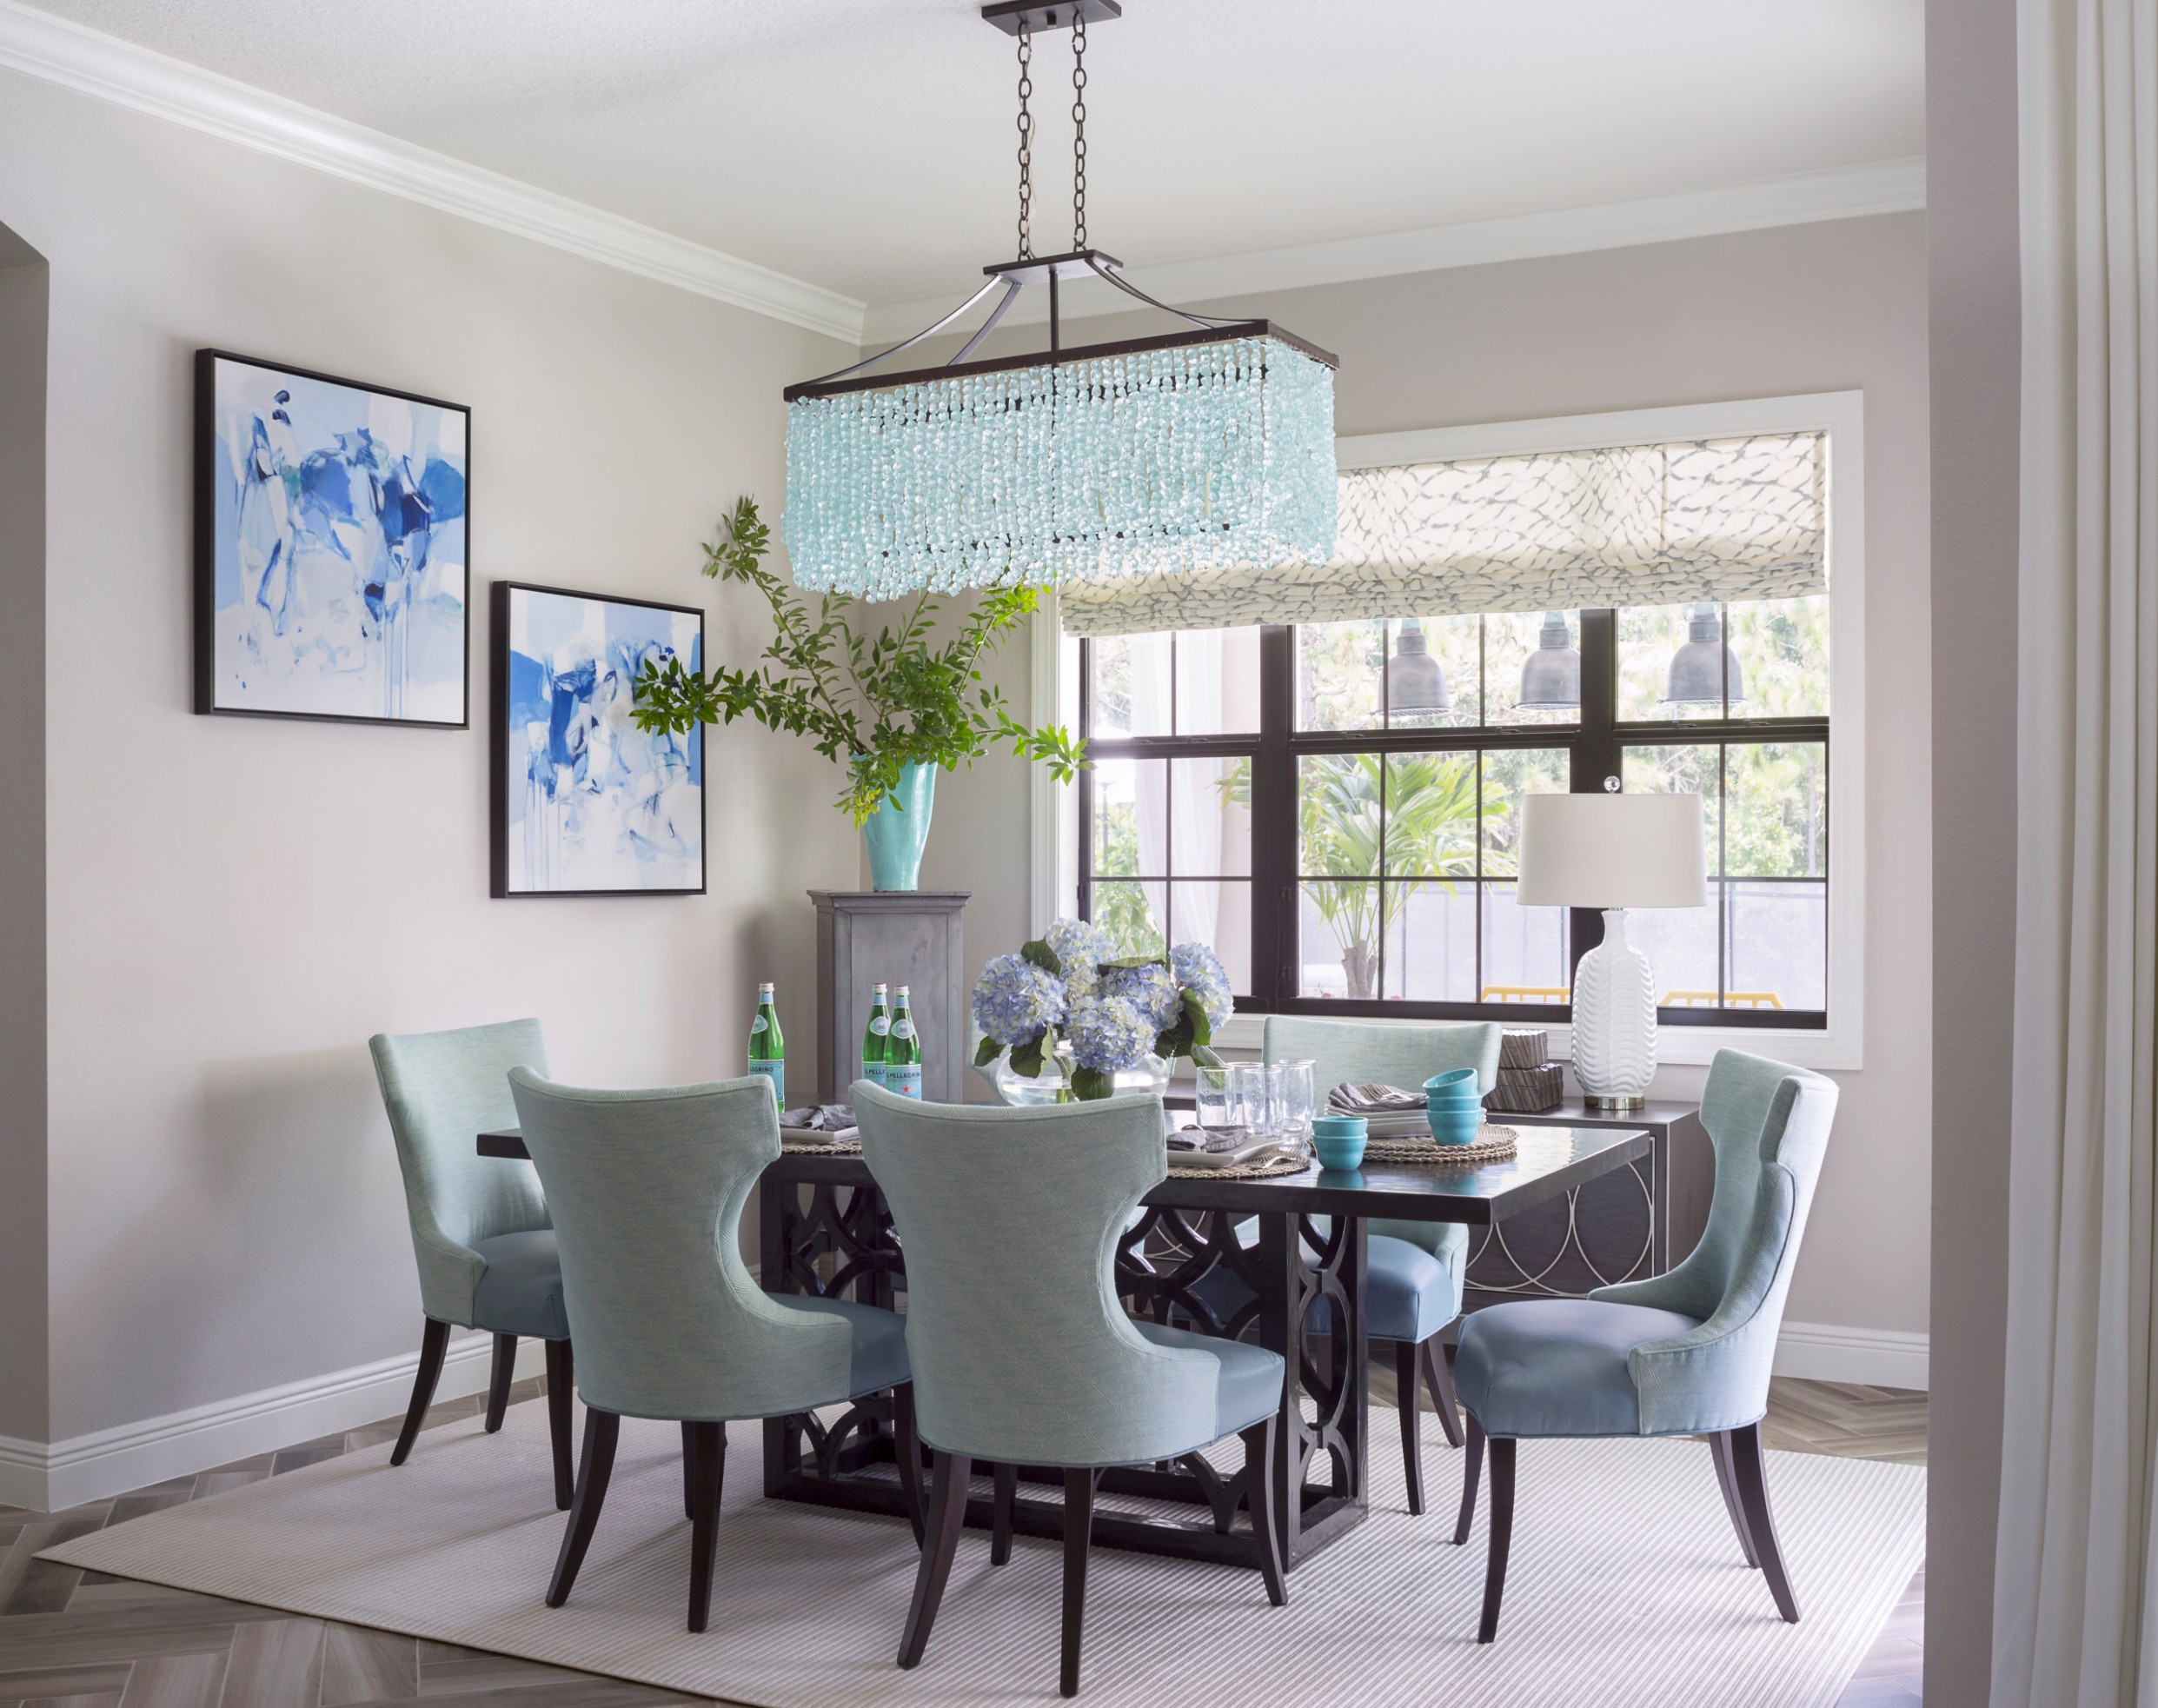 8 Beautiful Dining Room Pictures & Ideas - November, 8  Houzz - Dining Room Renovation Ideas